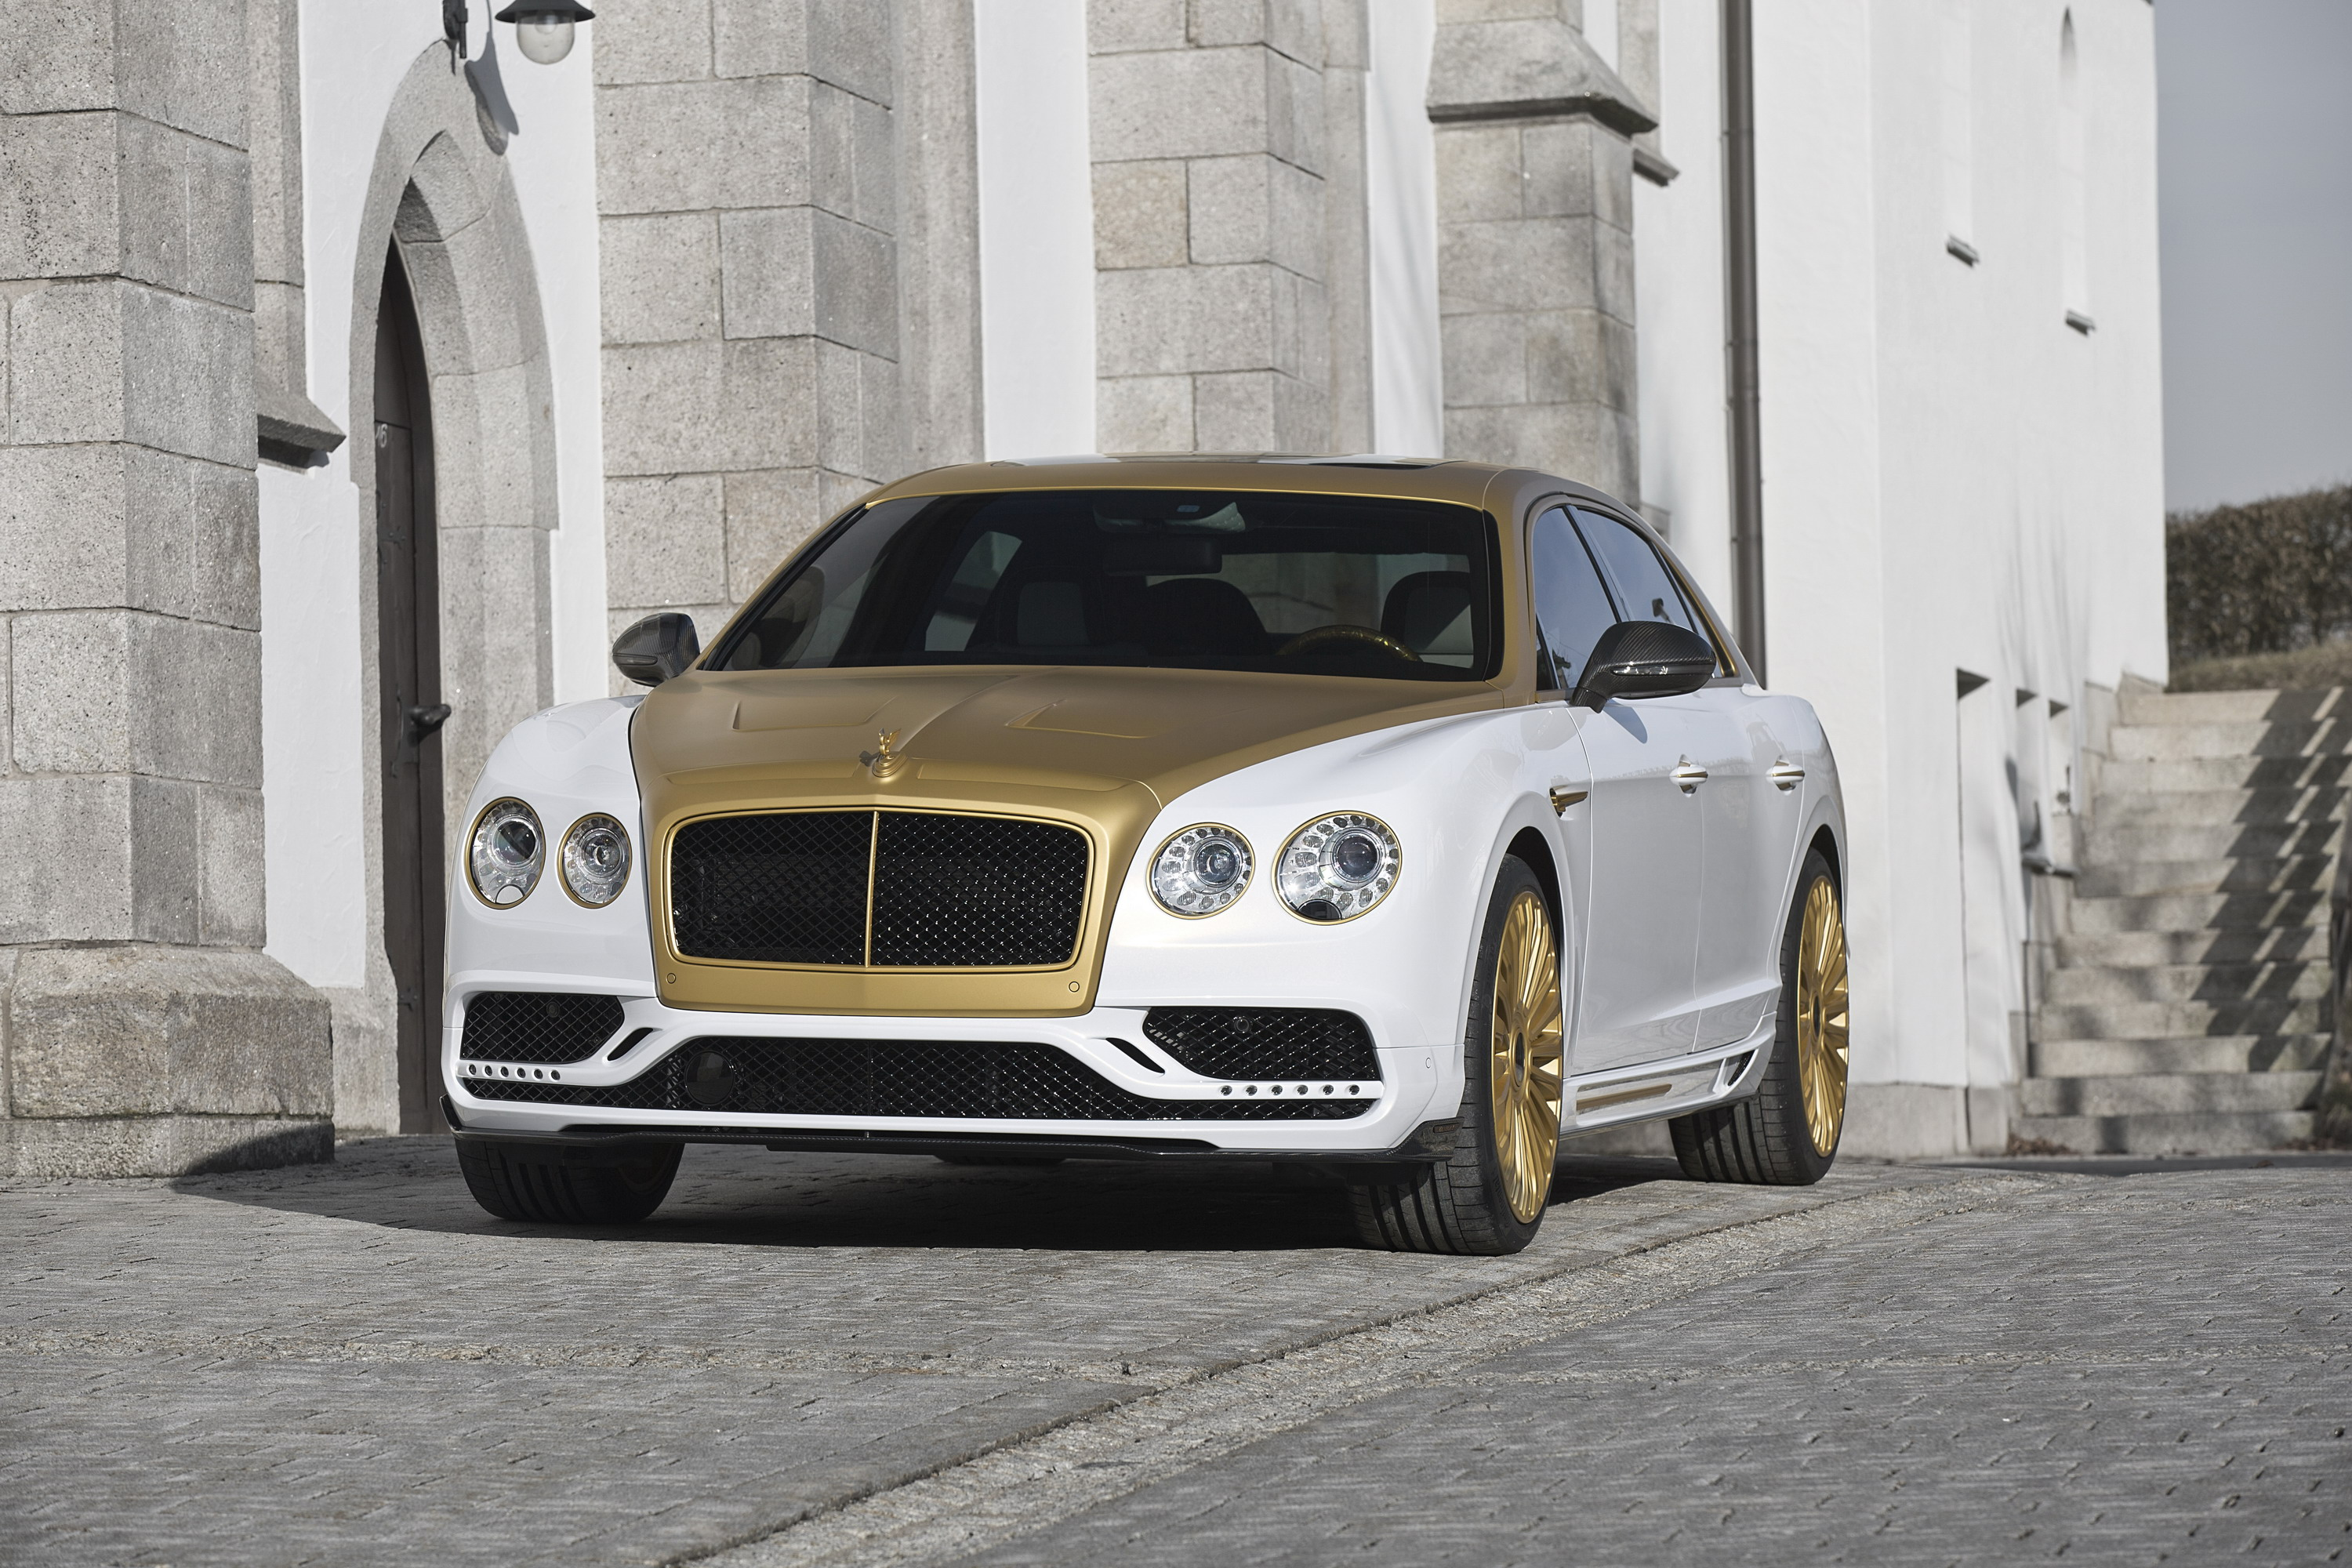 cars vegas luxury inventory gt carriage nv royal bentley continental las cpe view llc